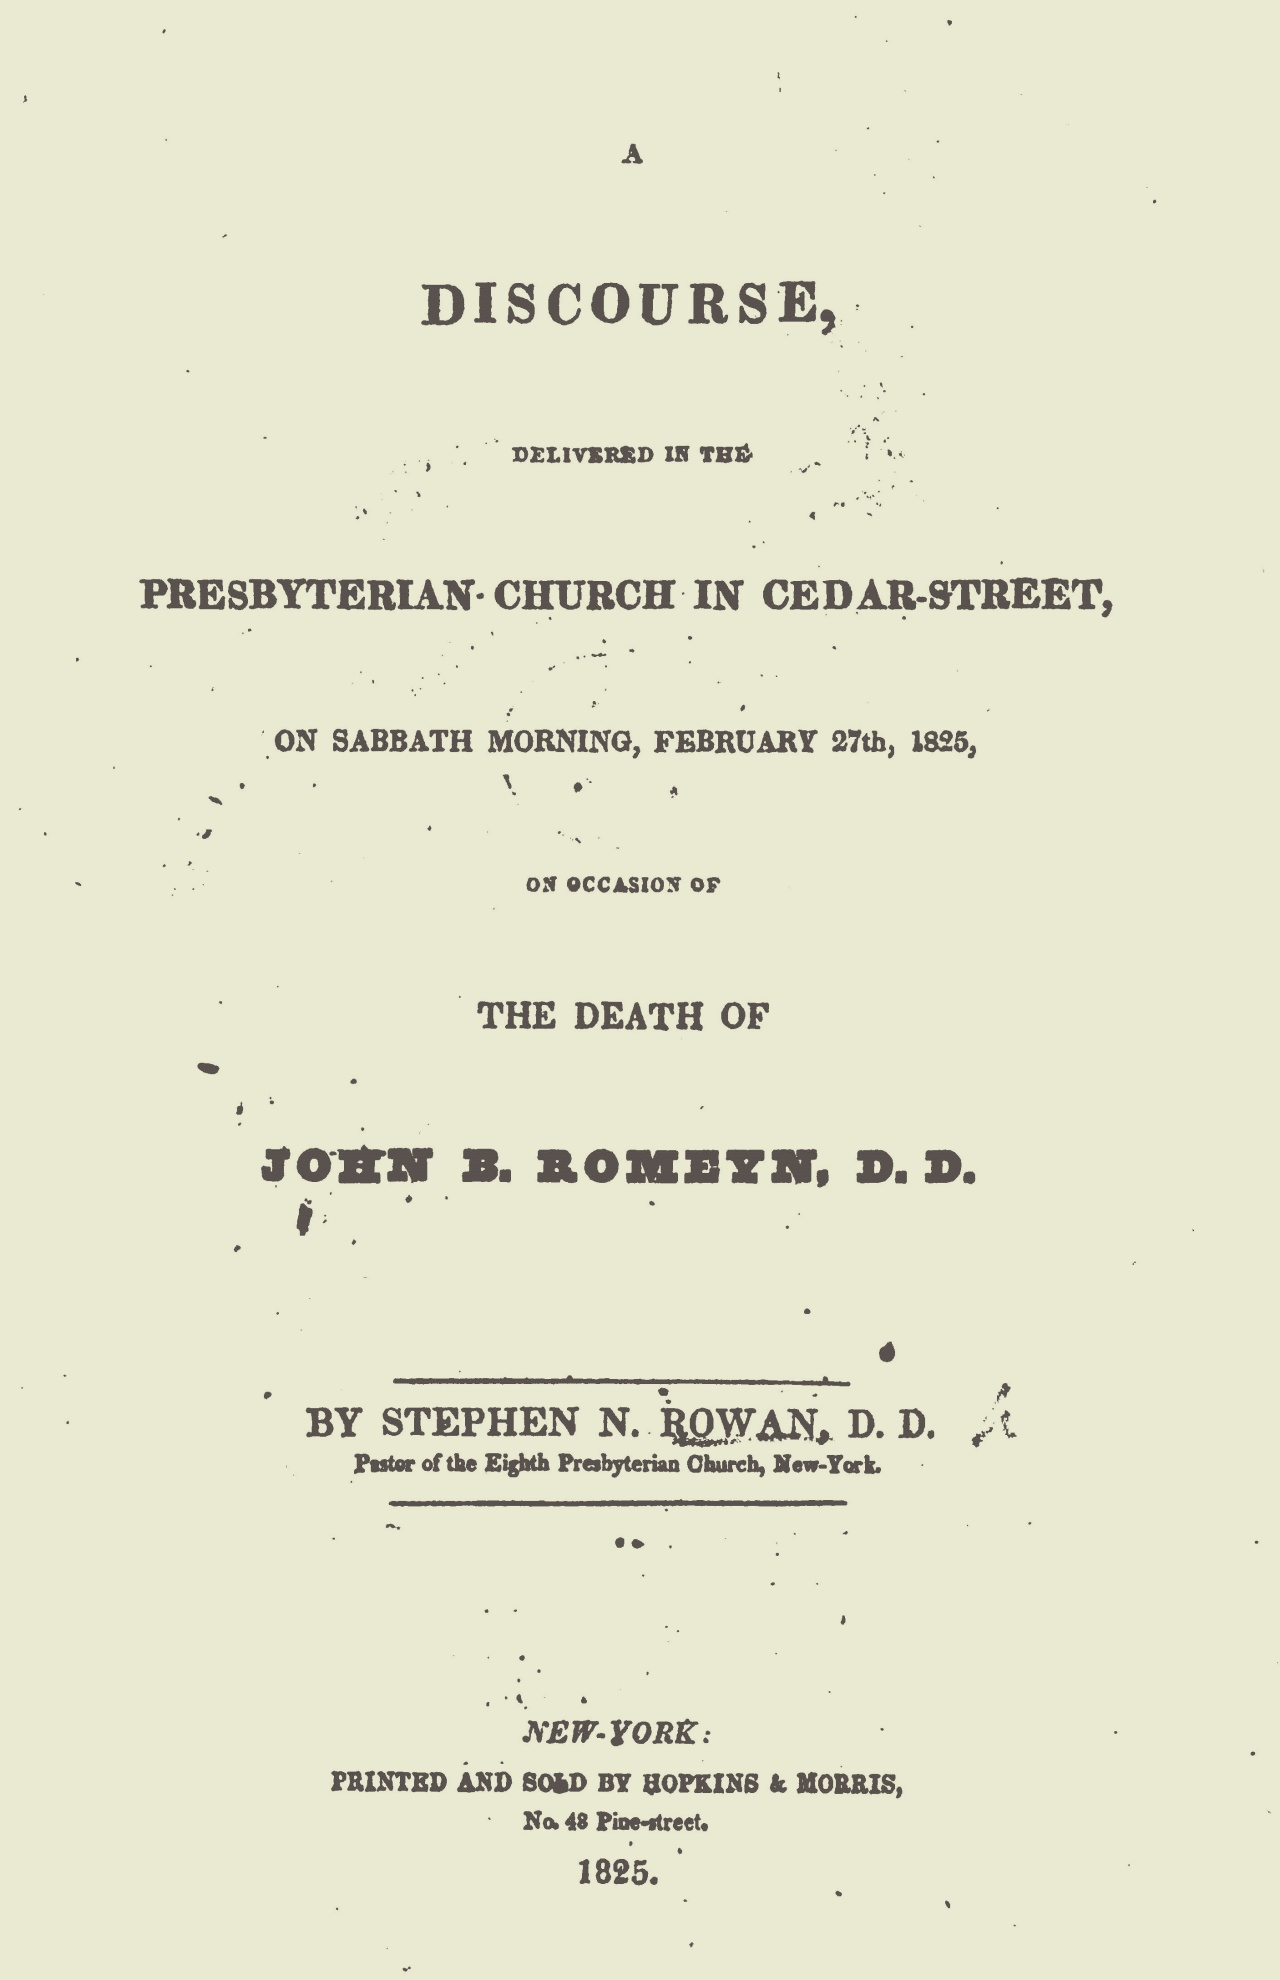 Rowan, Stephen N., A Discourse Delivered on the Death of John B. Romeyn Title Page.jpg